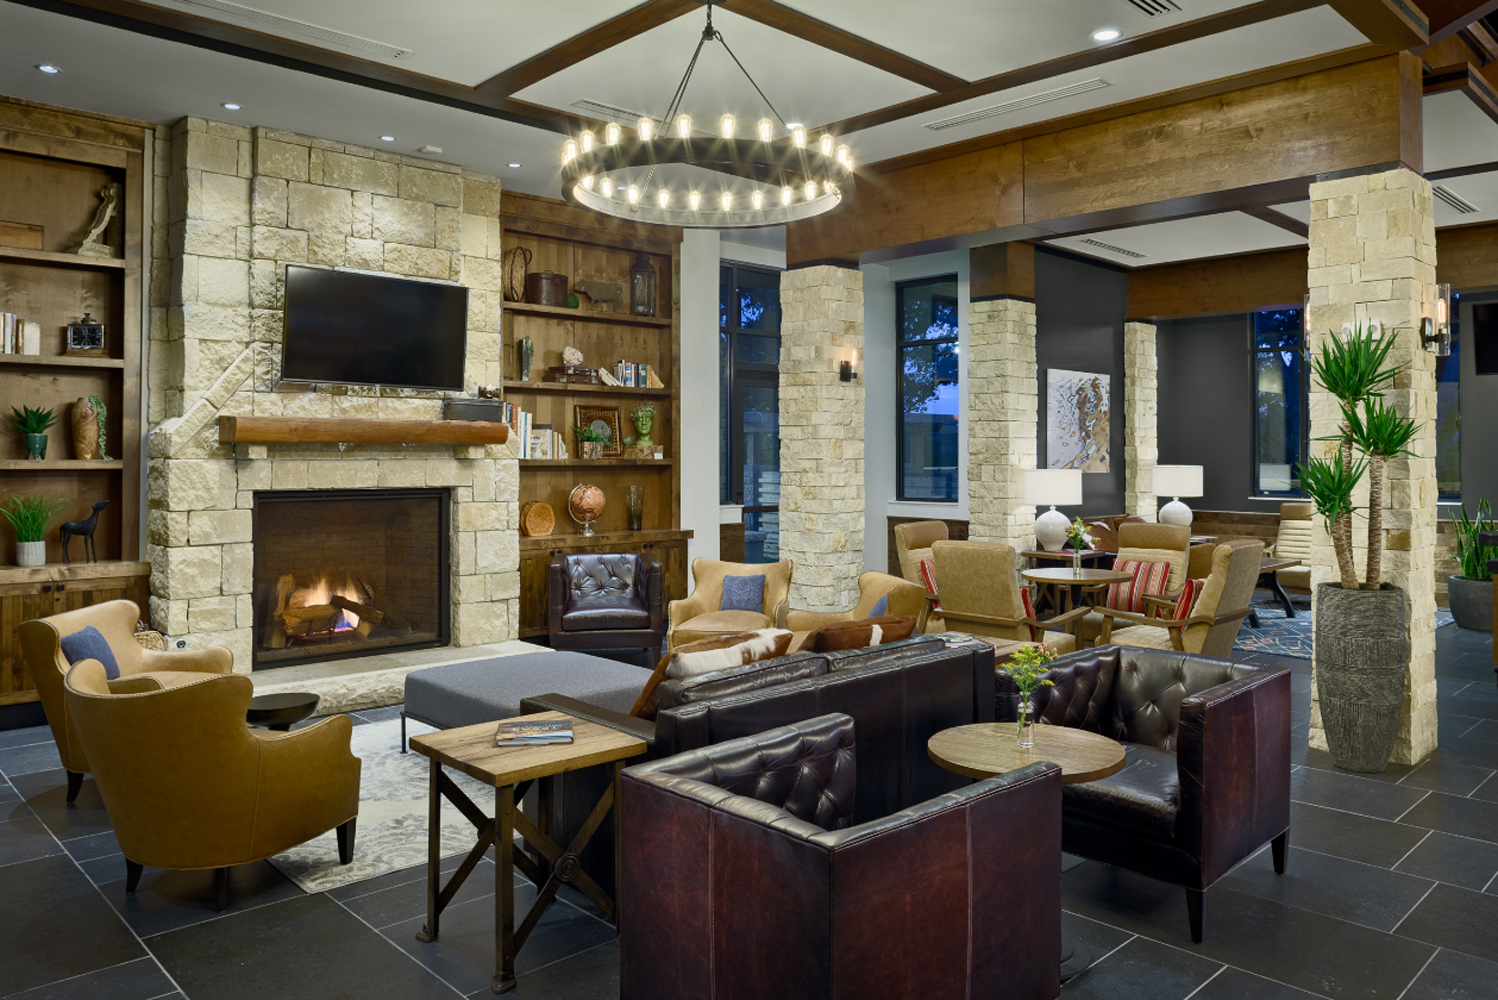 """The property is defined by its """"rustic meets contemporary"""" design, created by MatchLine Design Group and The Johnson Studio at Cooper Carry."""